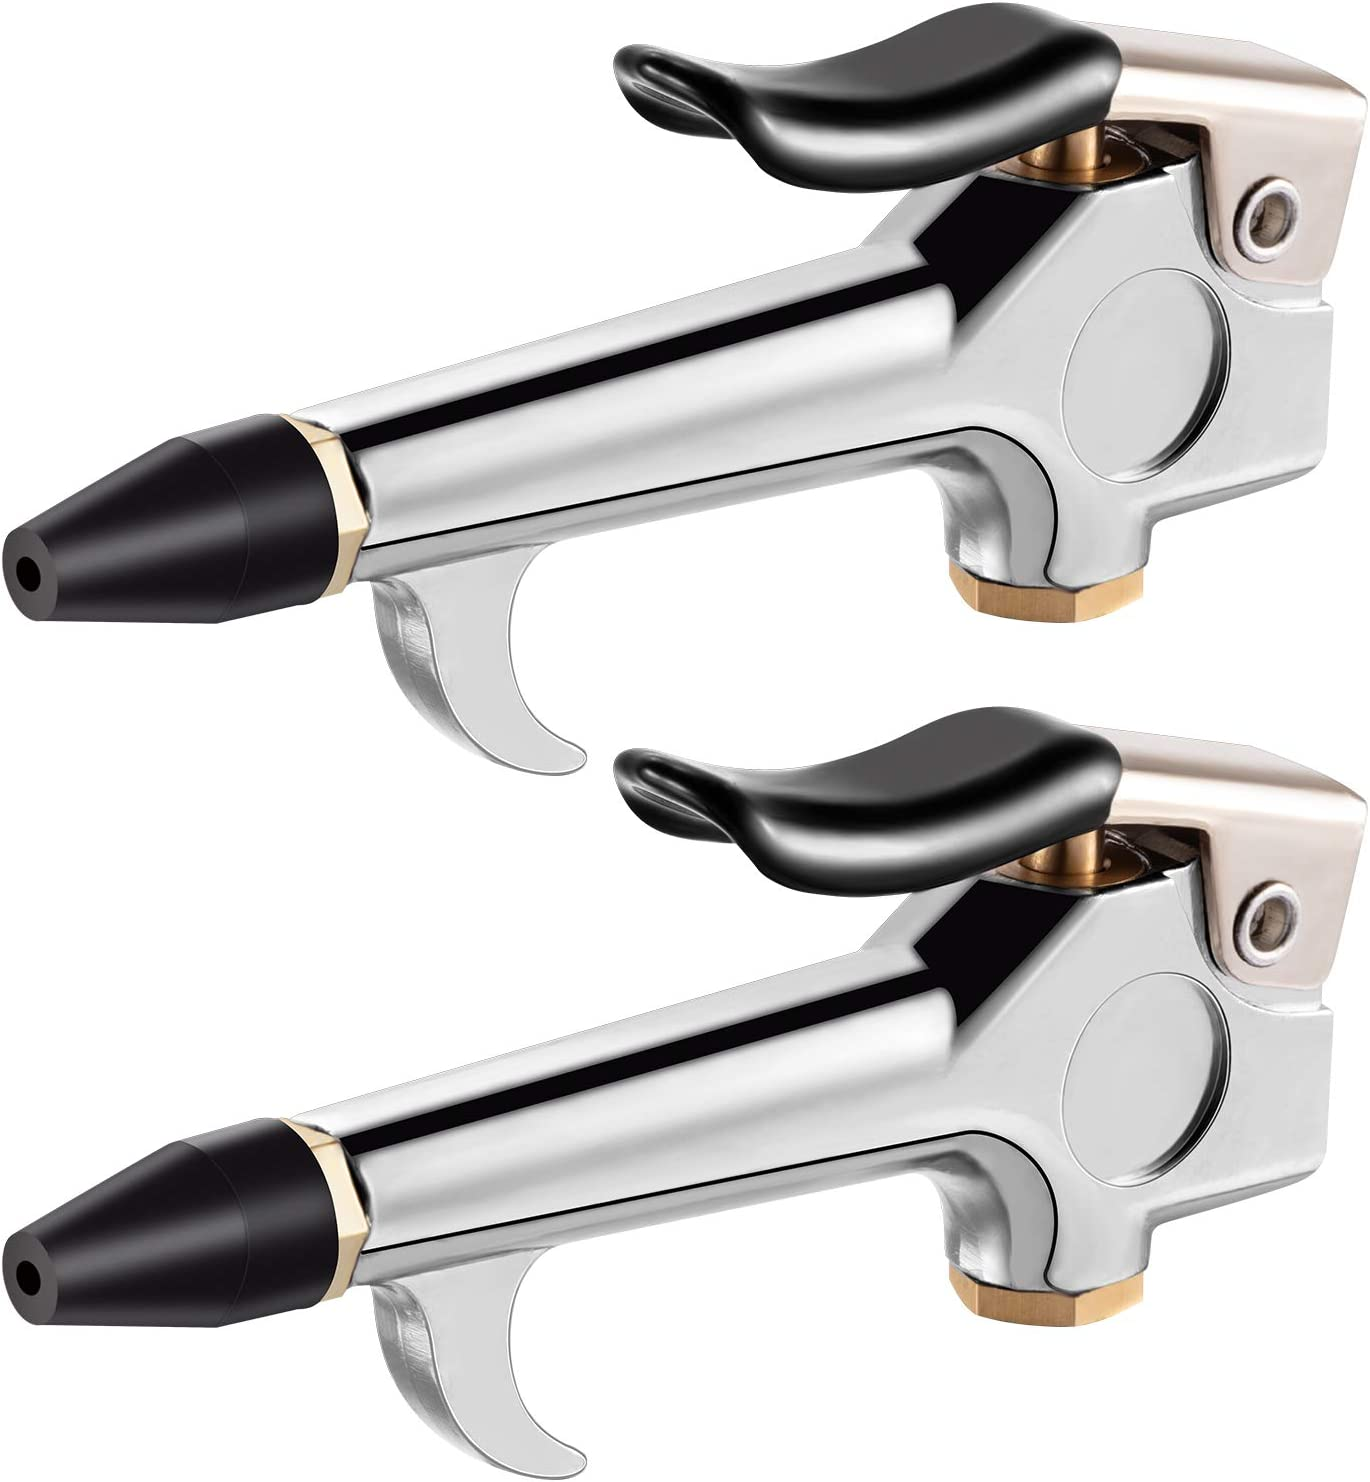 2 Pieces Lever Style Blow Gun with Rubber and Safety Tip Nozzles for Home Garage Shop Industrial